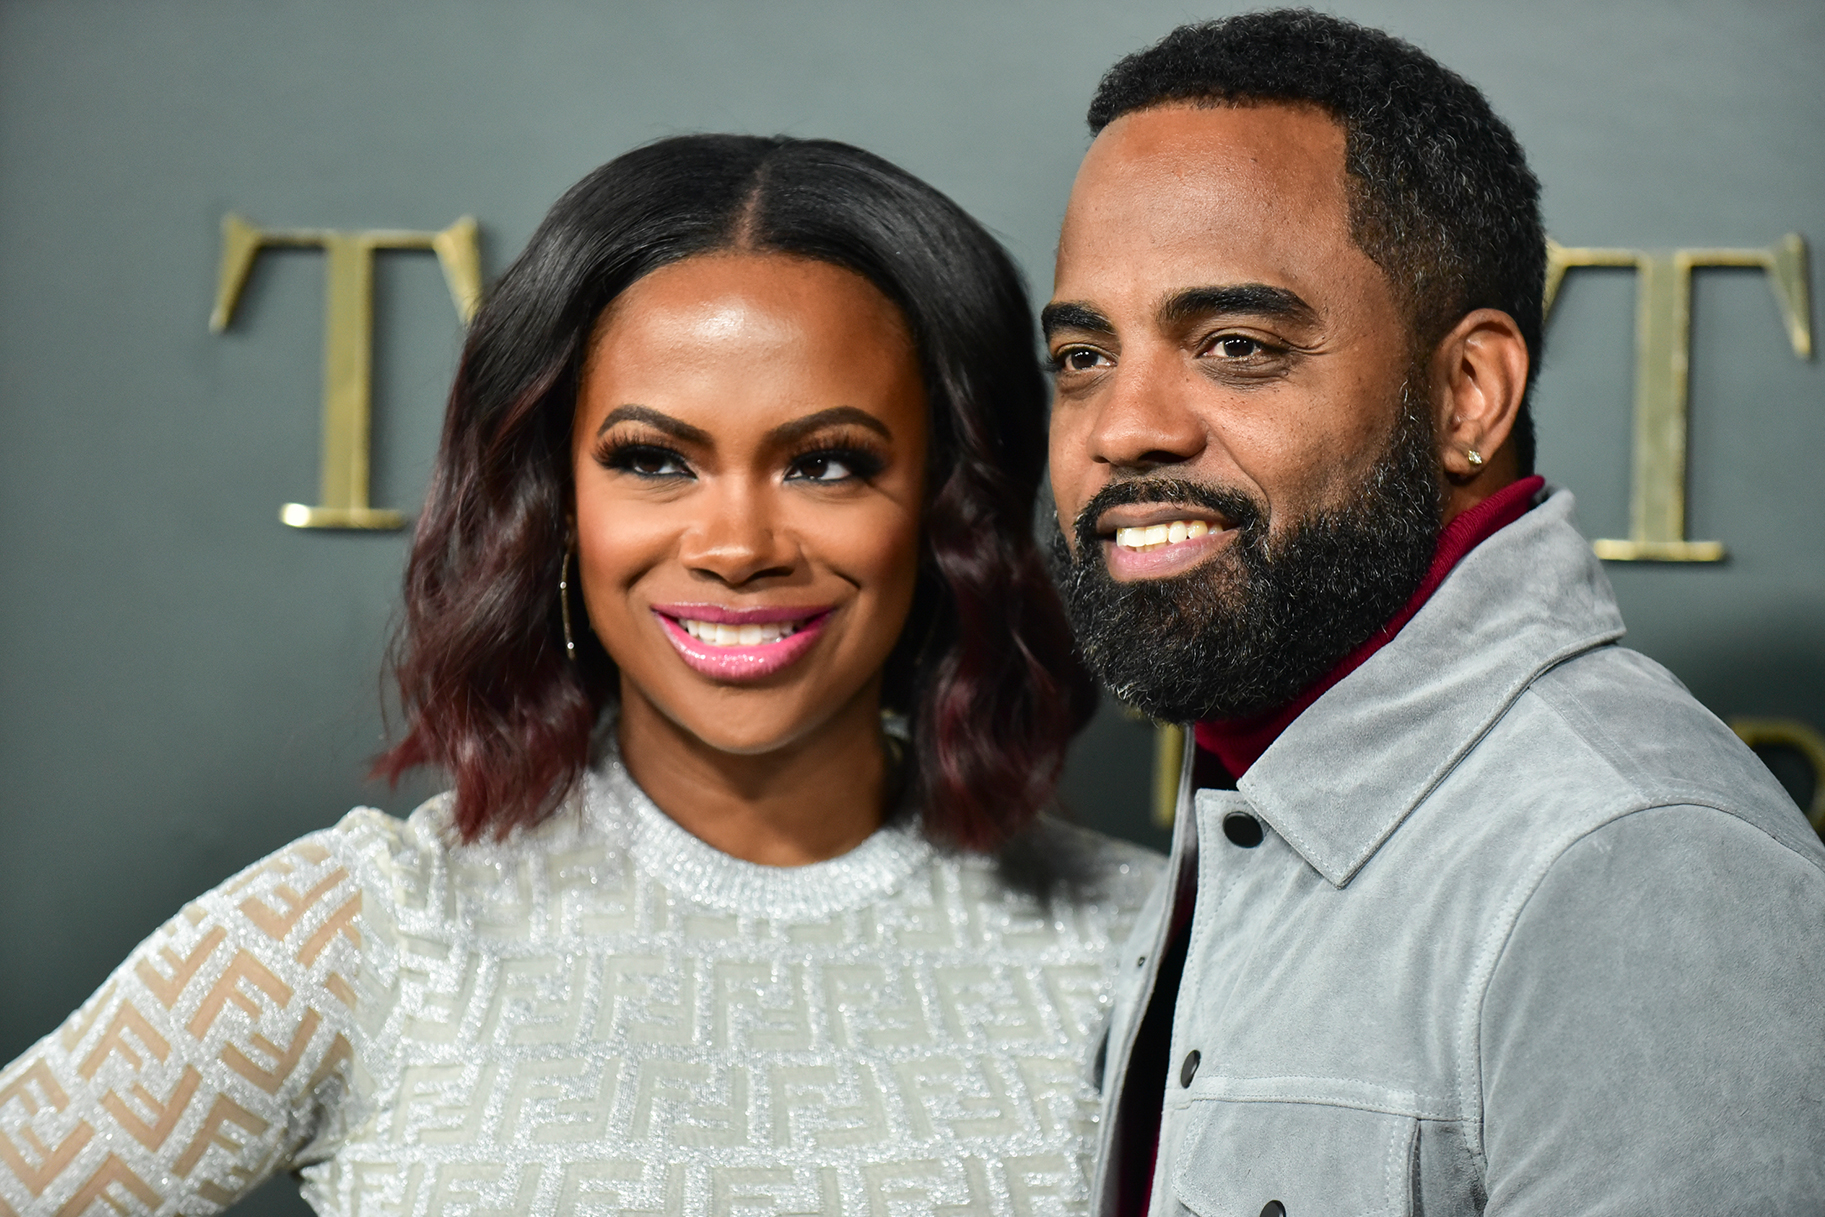 kandi-burruss-and-todd-tucker-keep-the-convo-of-race-equality-going-see-the-video